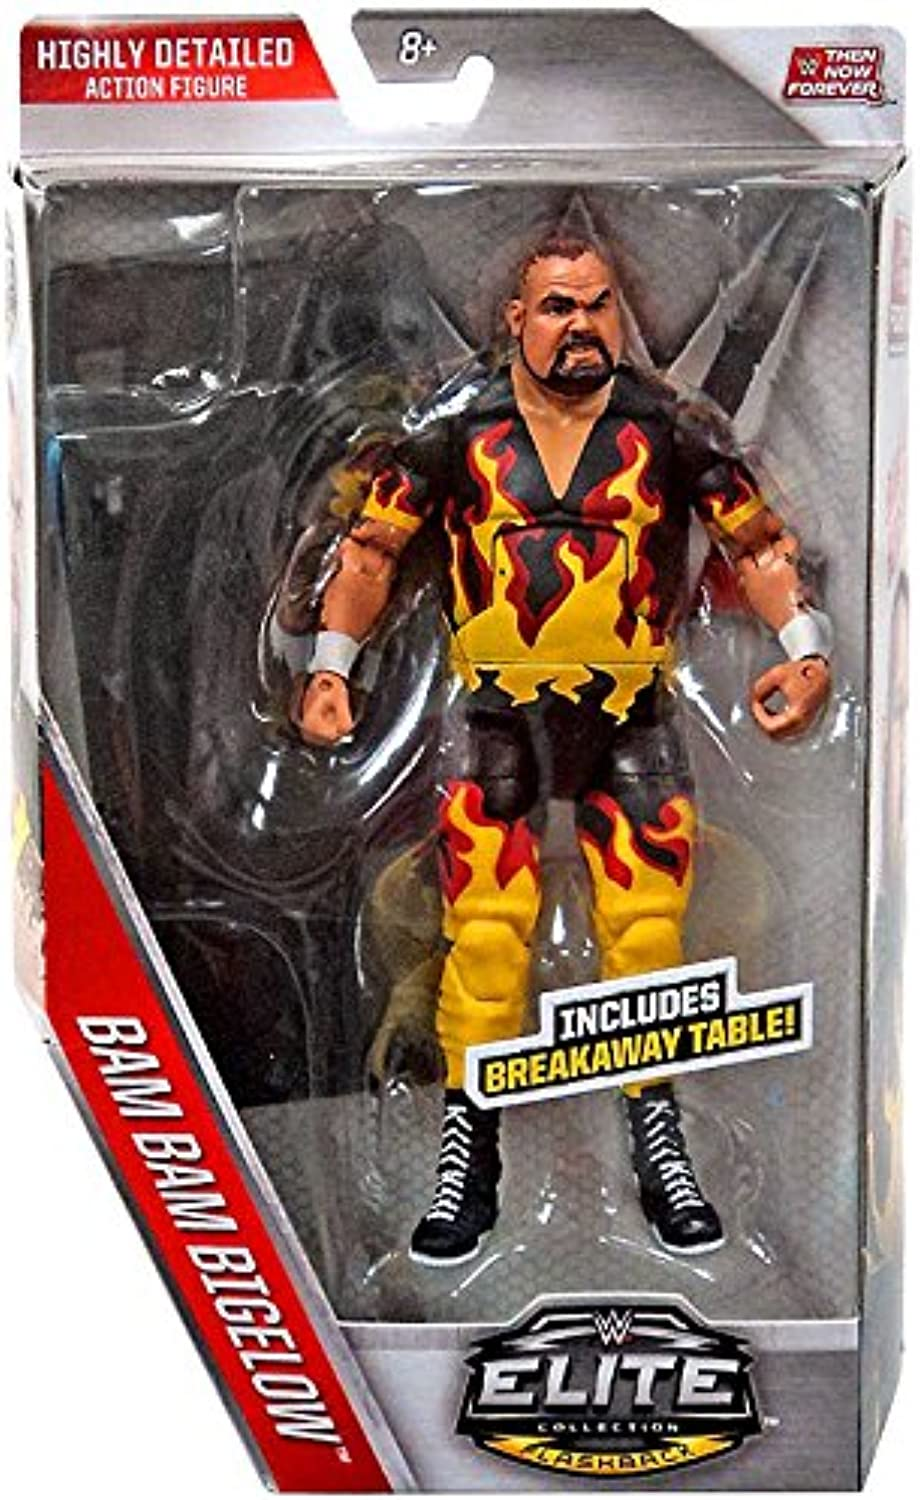 WWE, Elite Collection Then Now Forever, Bam Bam Bigelow Action Figure